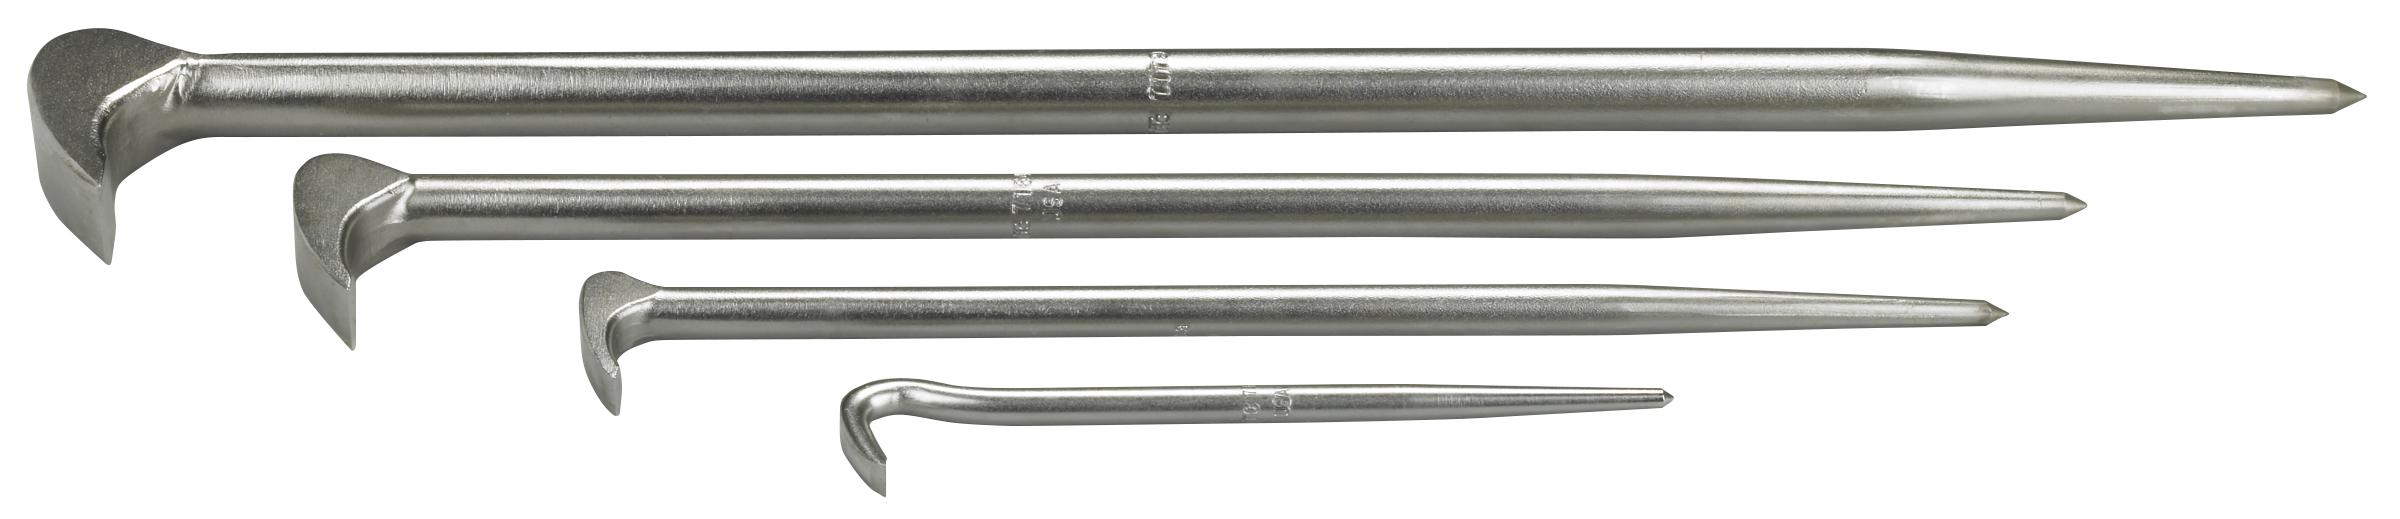 4 Piece Rolling Head Pry Bar Kit